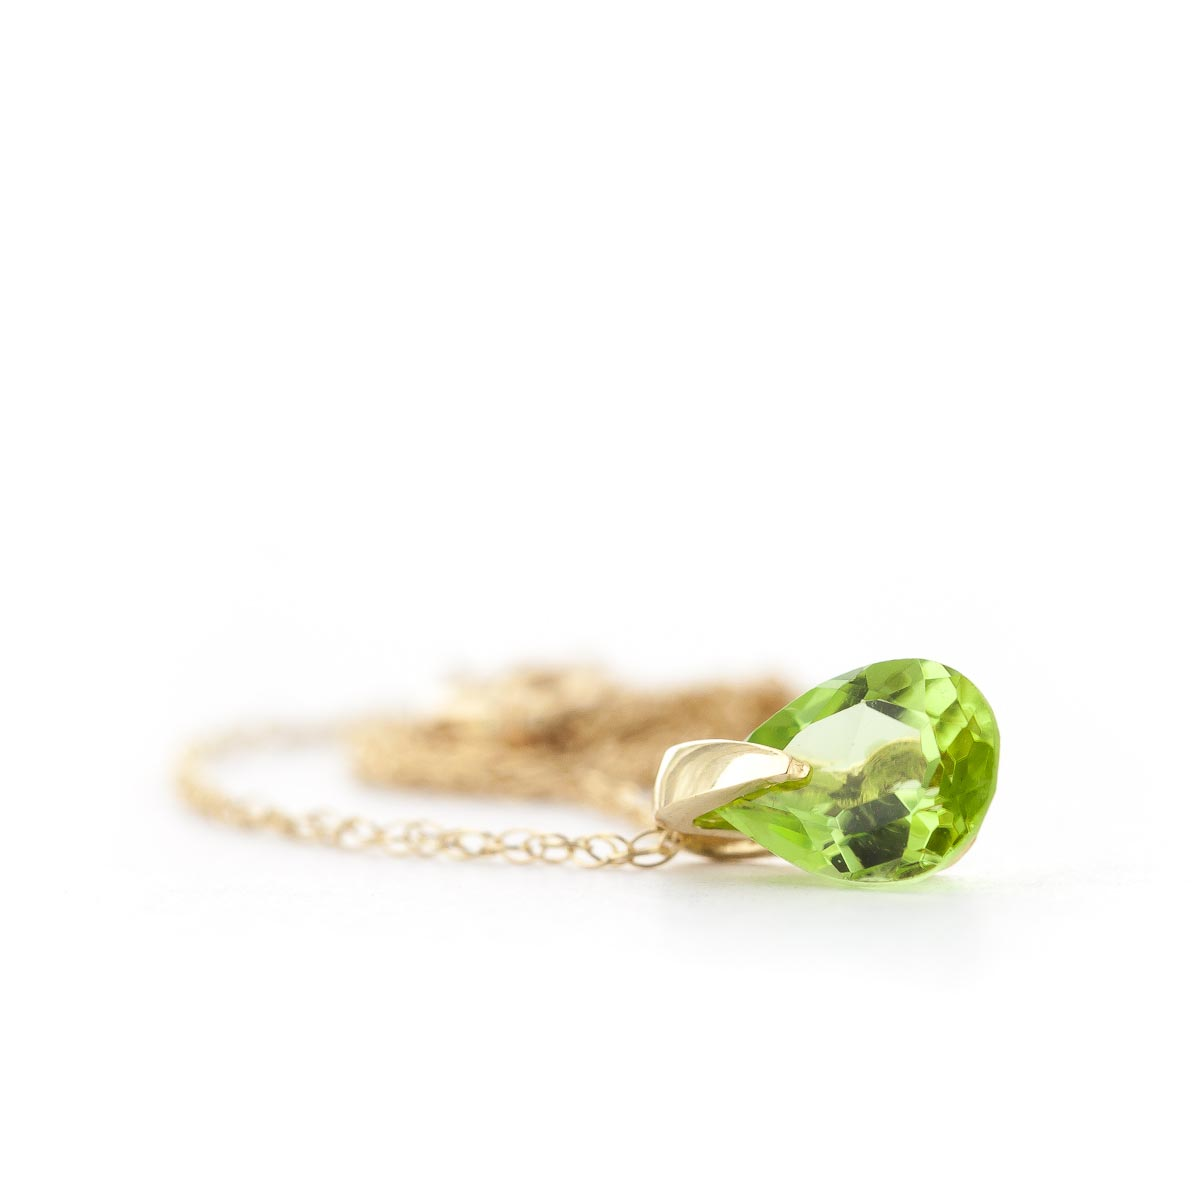 Pear Cut Peridot Pendant Necklace 0.68ct in 9ct Gold